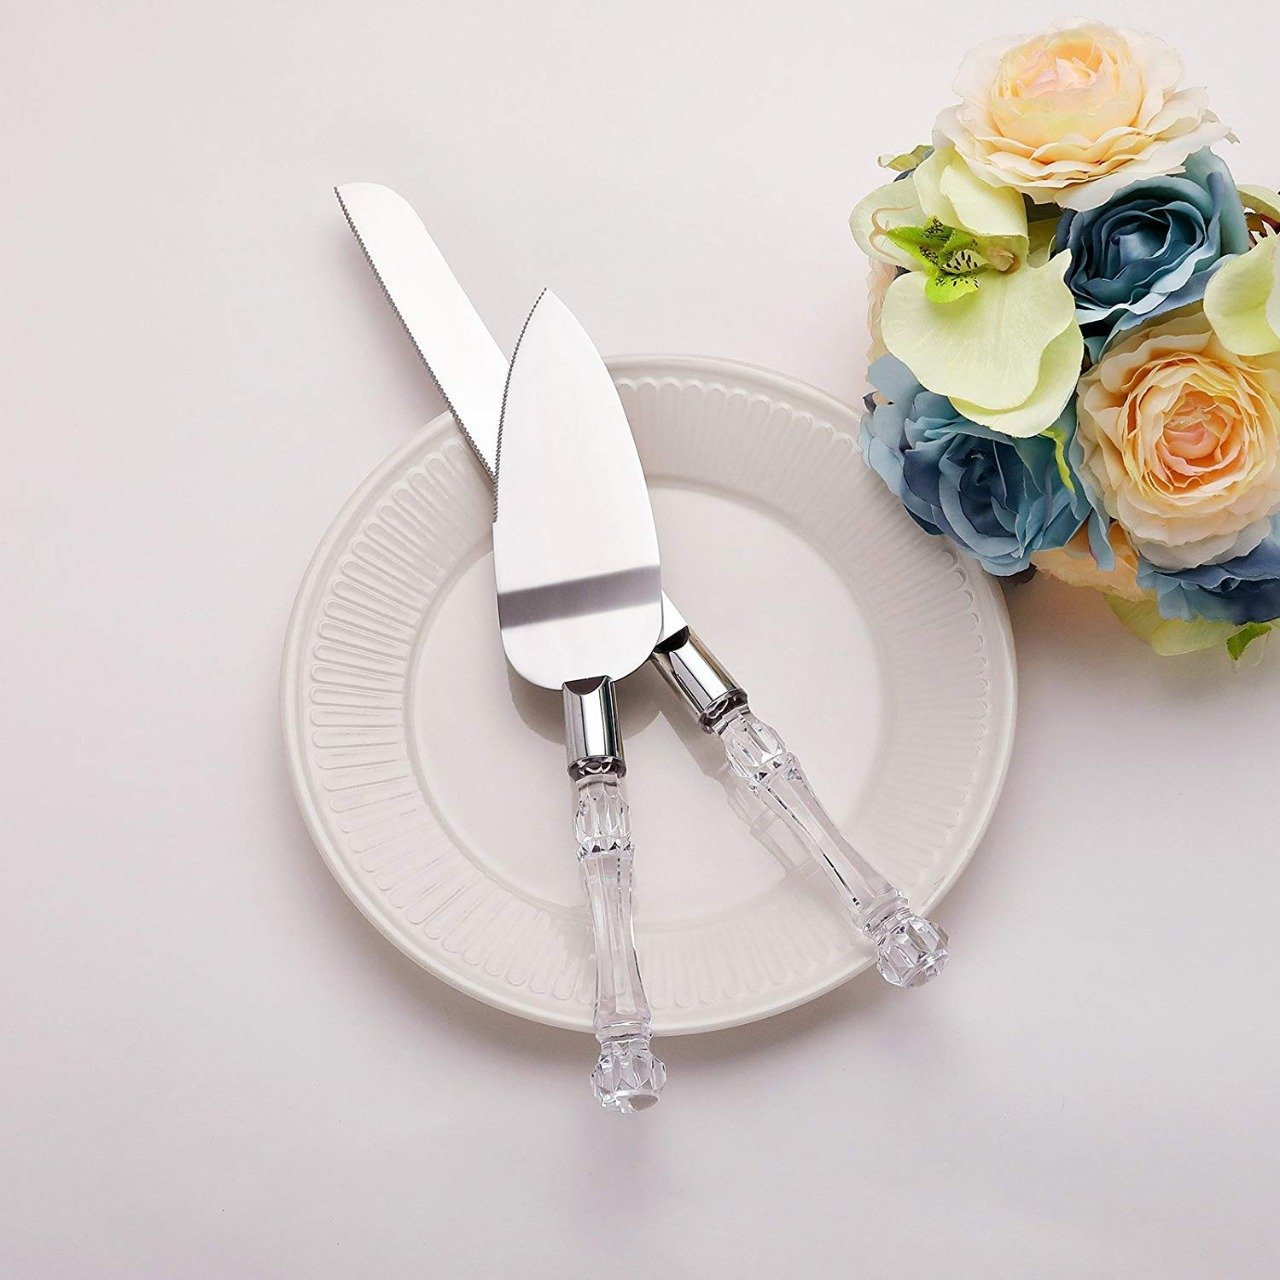 Stainless Steel Cake Knife Server Set with Handle Slicer